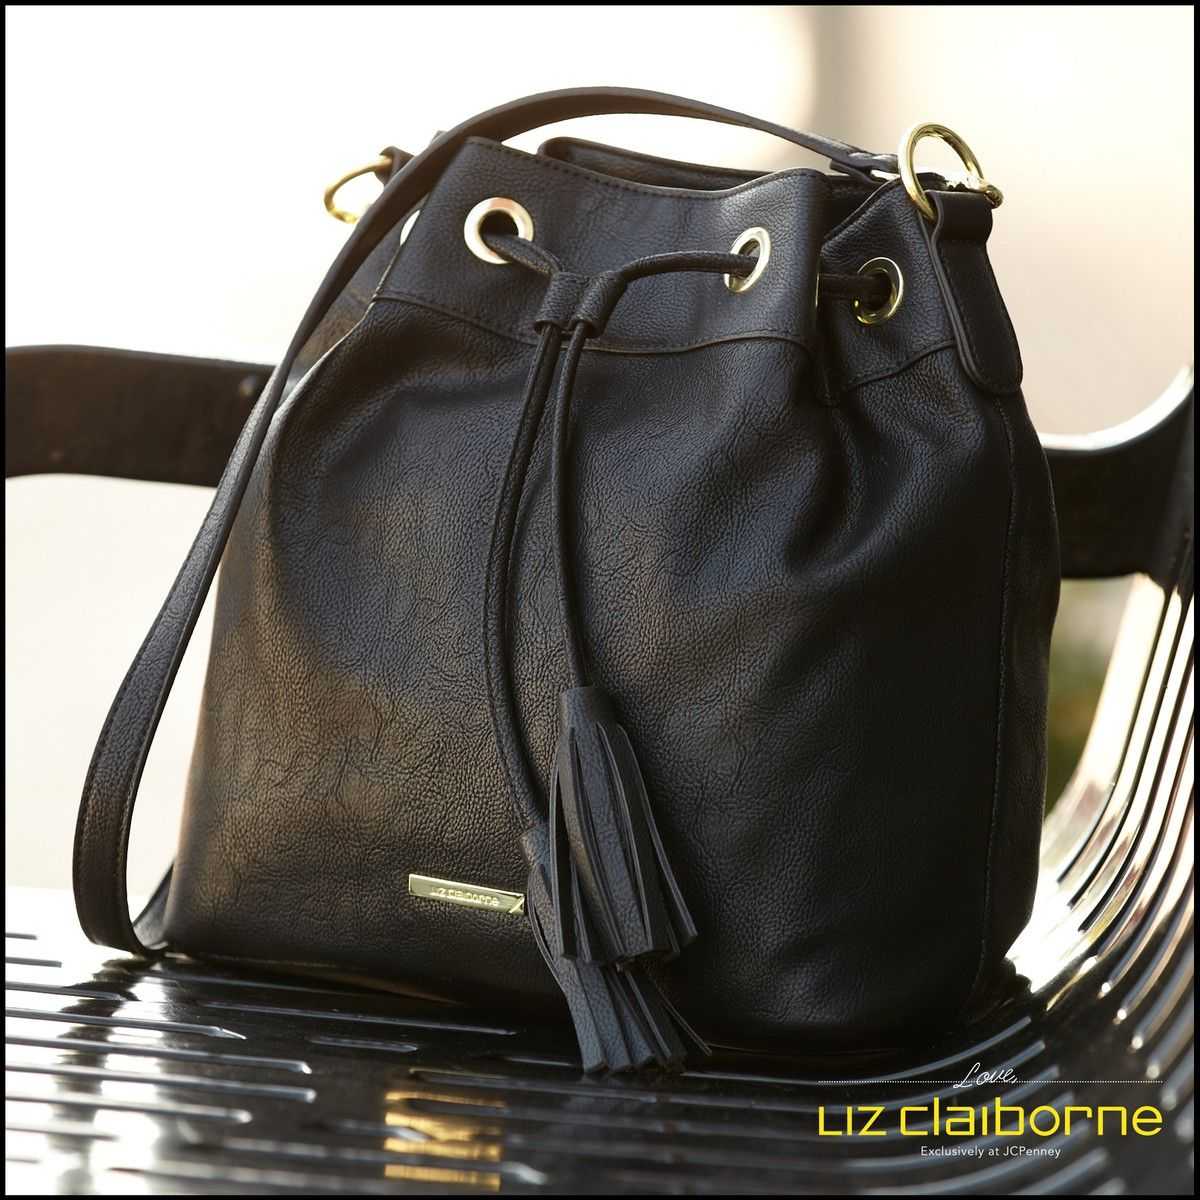 8fd819576d Absolutely love this Liz Claiborne purse. It matches so many outfits and  holds just the right amount